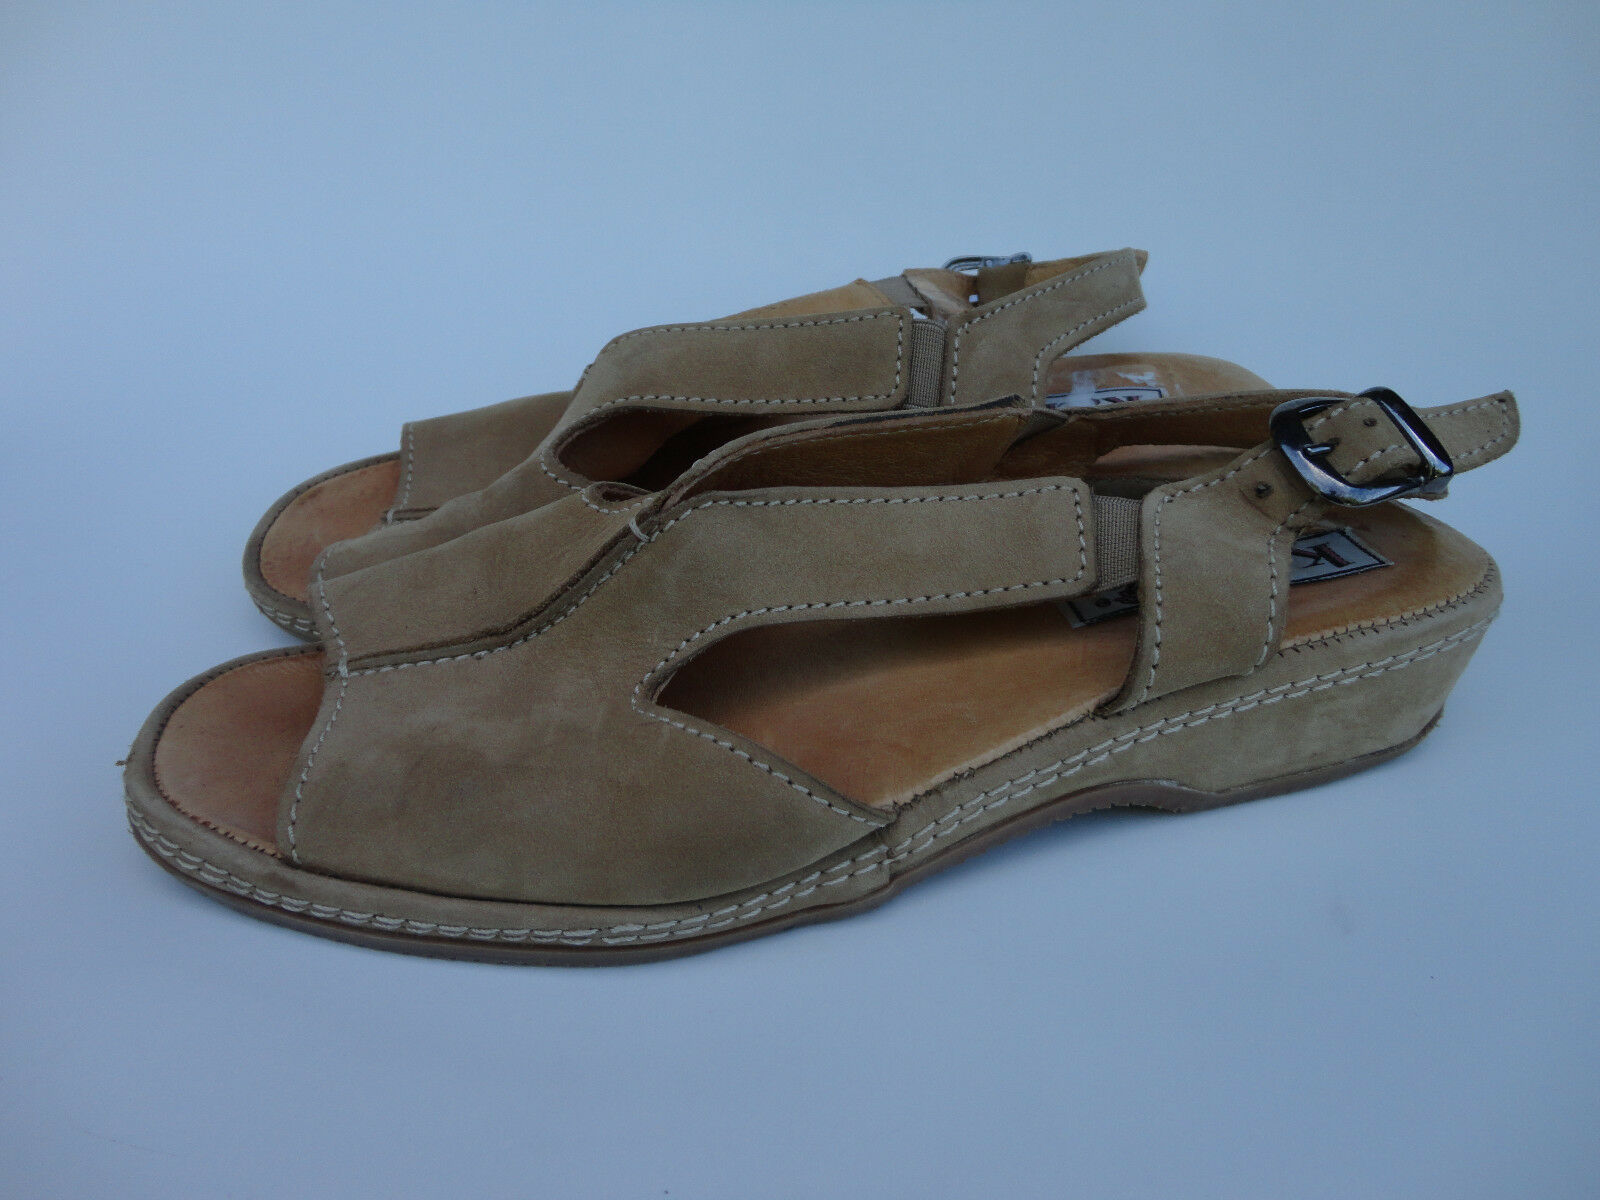 Katrin Made in Italy Sandal {Women Size Eur38} Tan Leather Sandal Italy Shoes a9e484